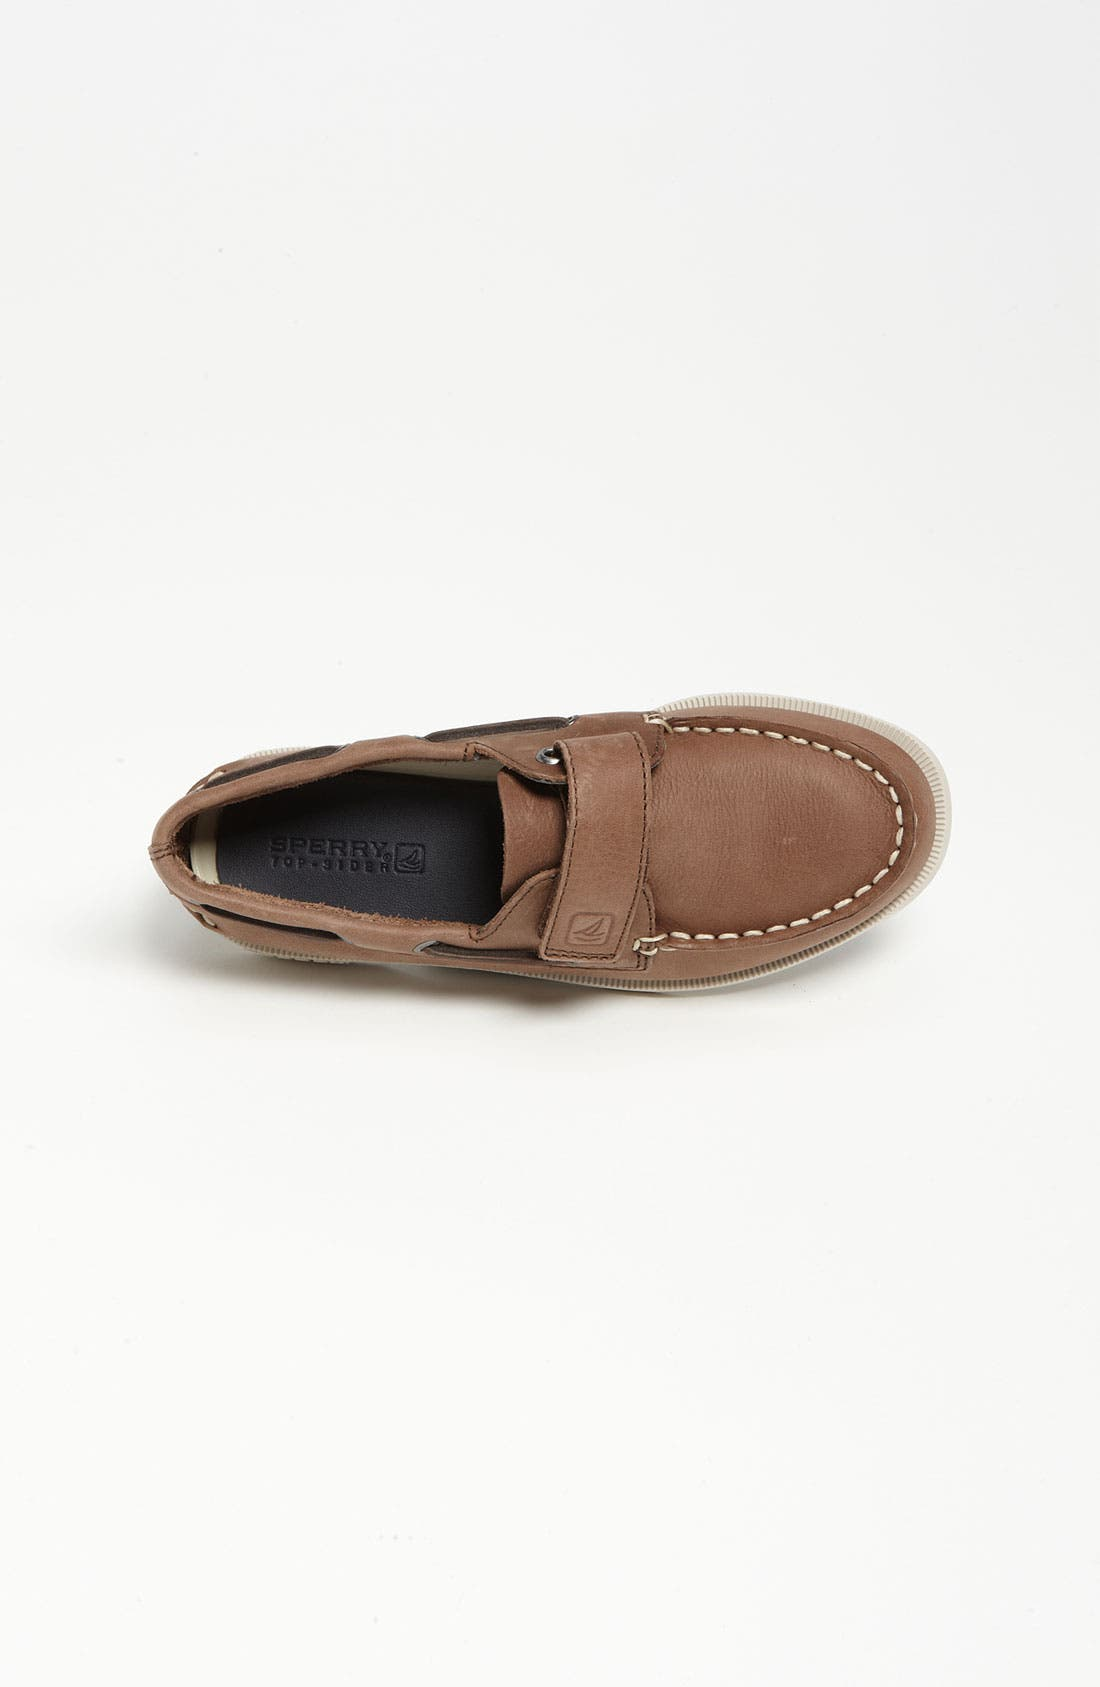 Sperry Top-Sider<sup>®</sup> Kids 'Authentic Original' Boat Shoe,                             Alternate thumbnail 4, color,                             BROWN